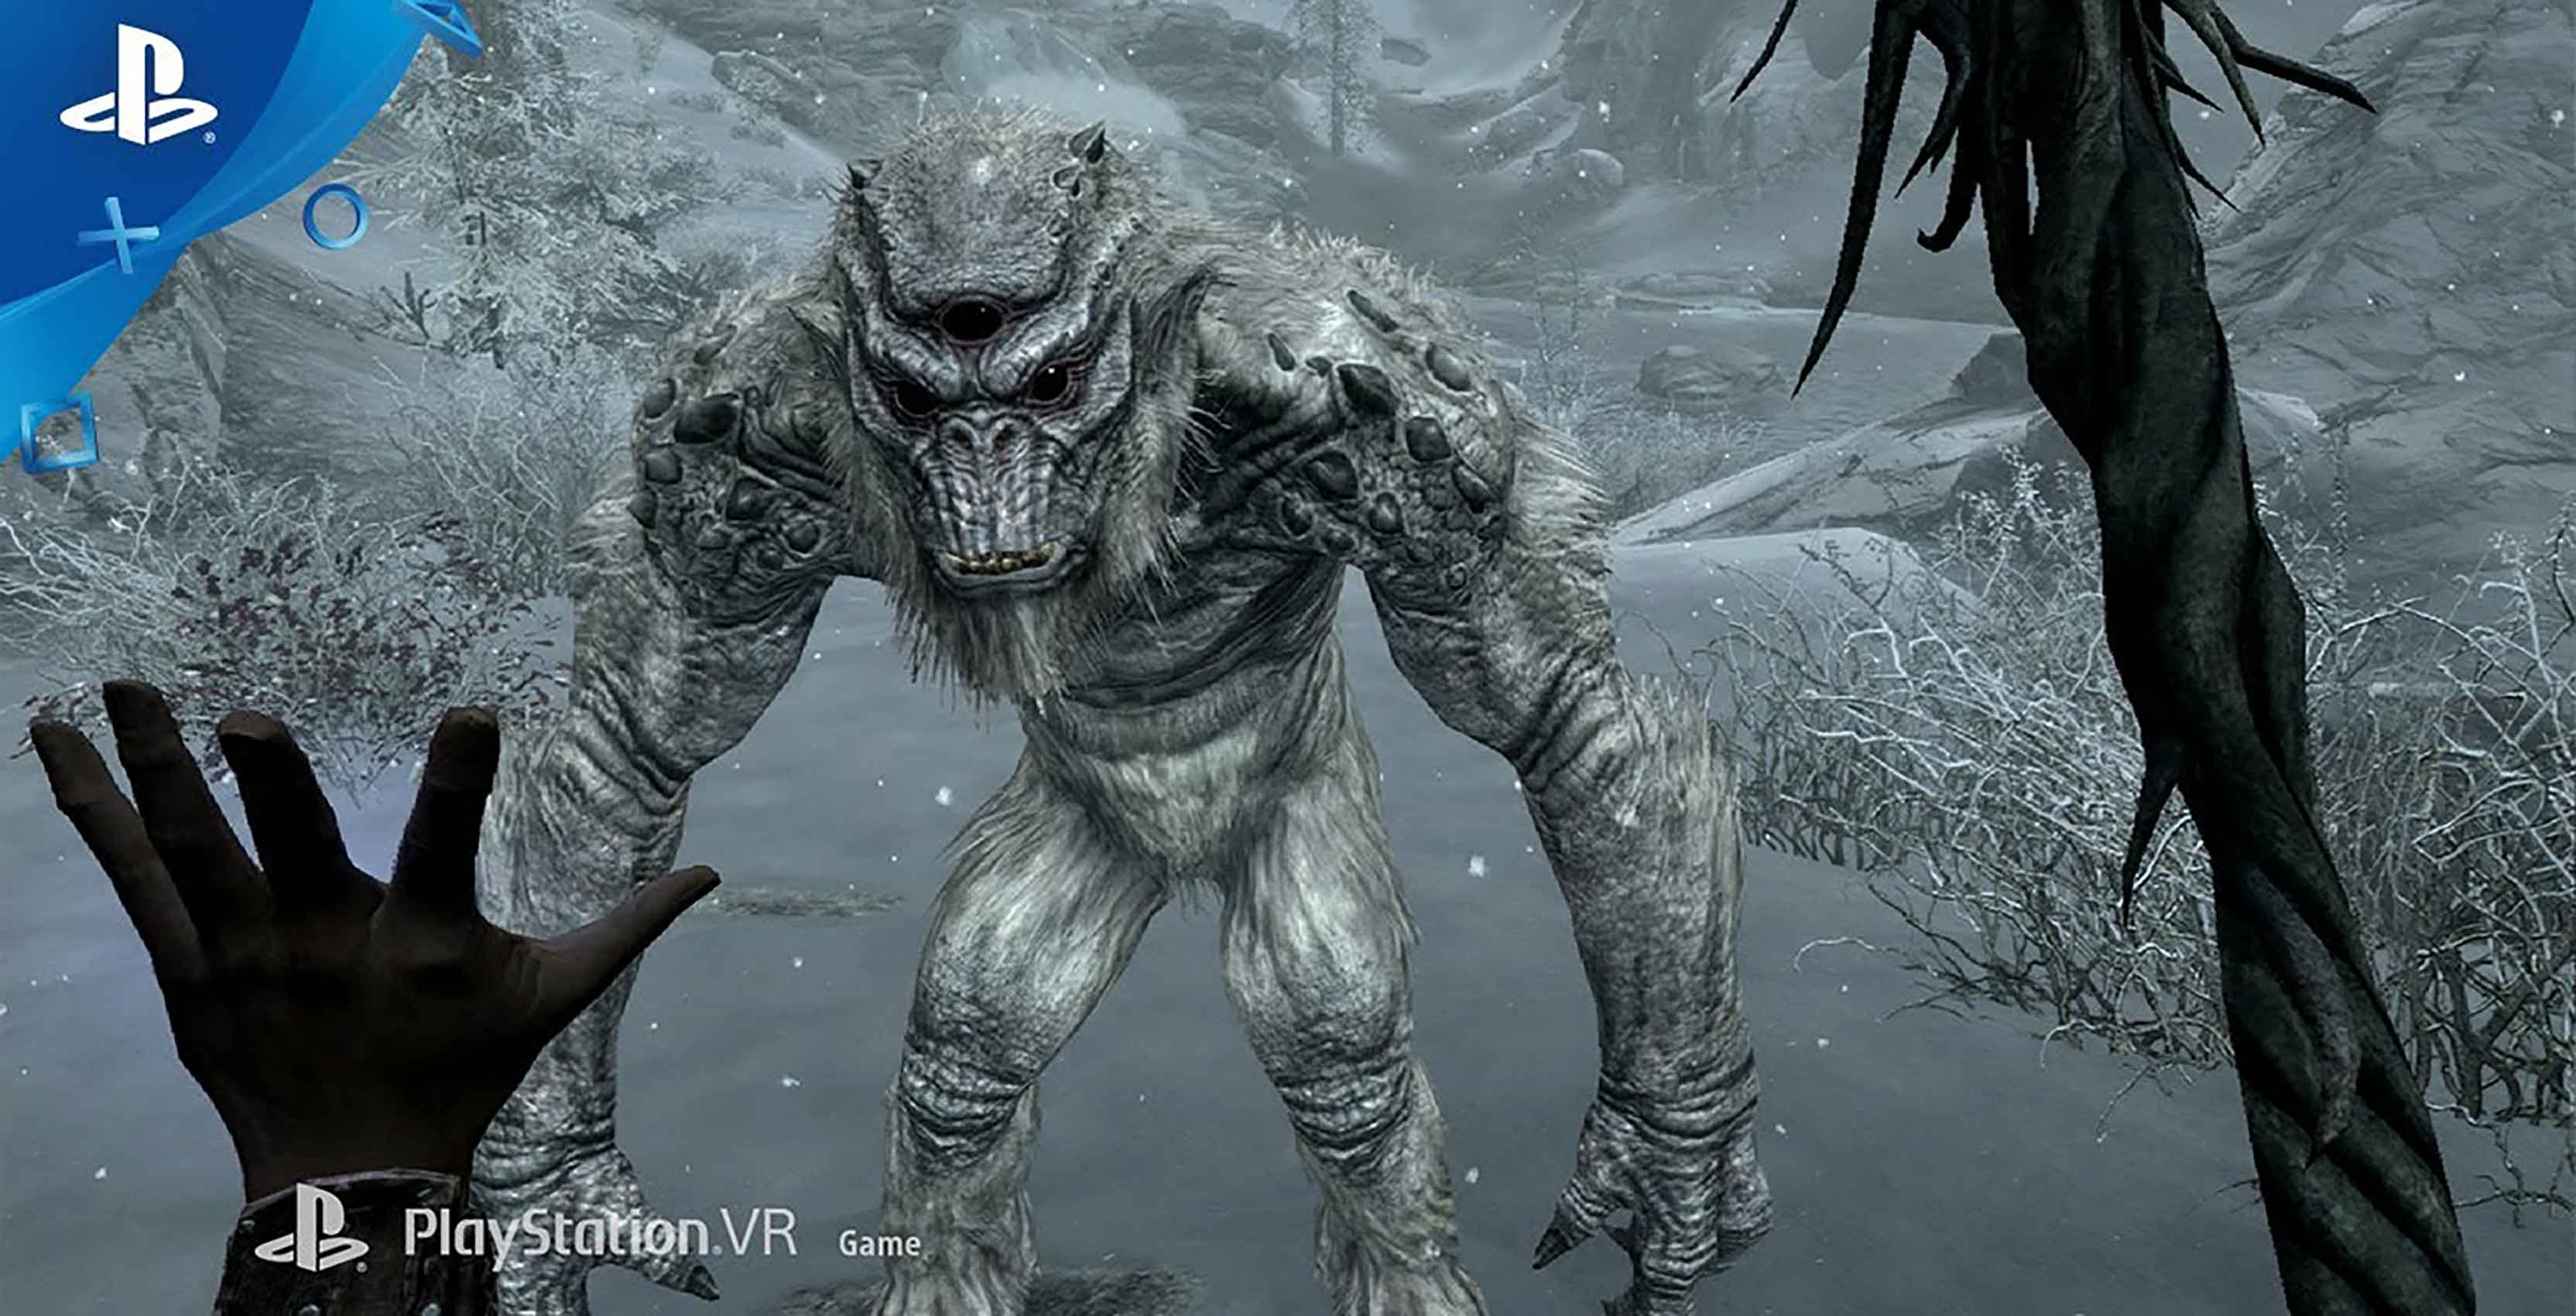 Bethesda announces release dates for Doom, Fallout 4, Skyrim VR versions